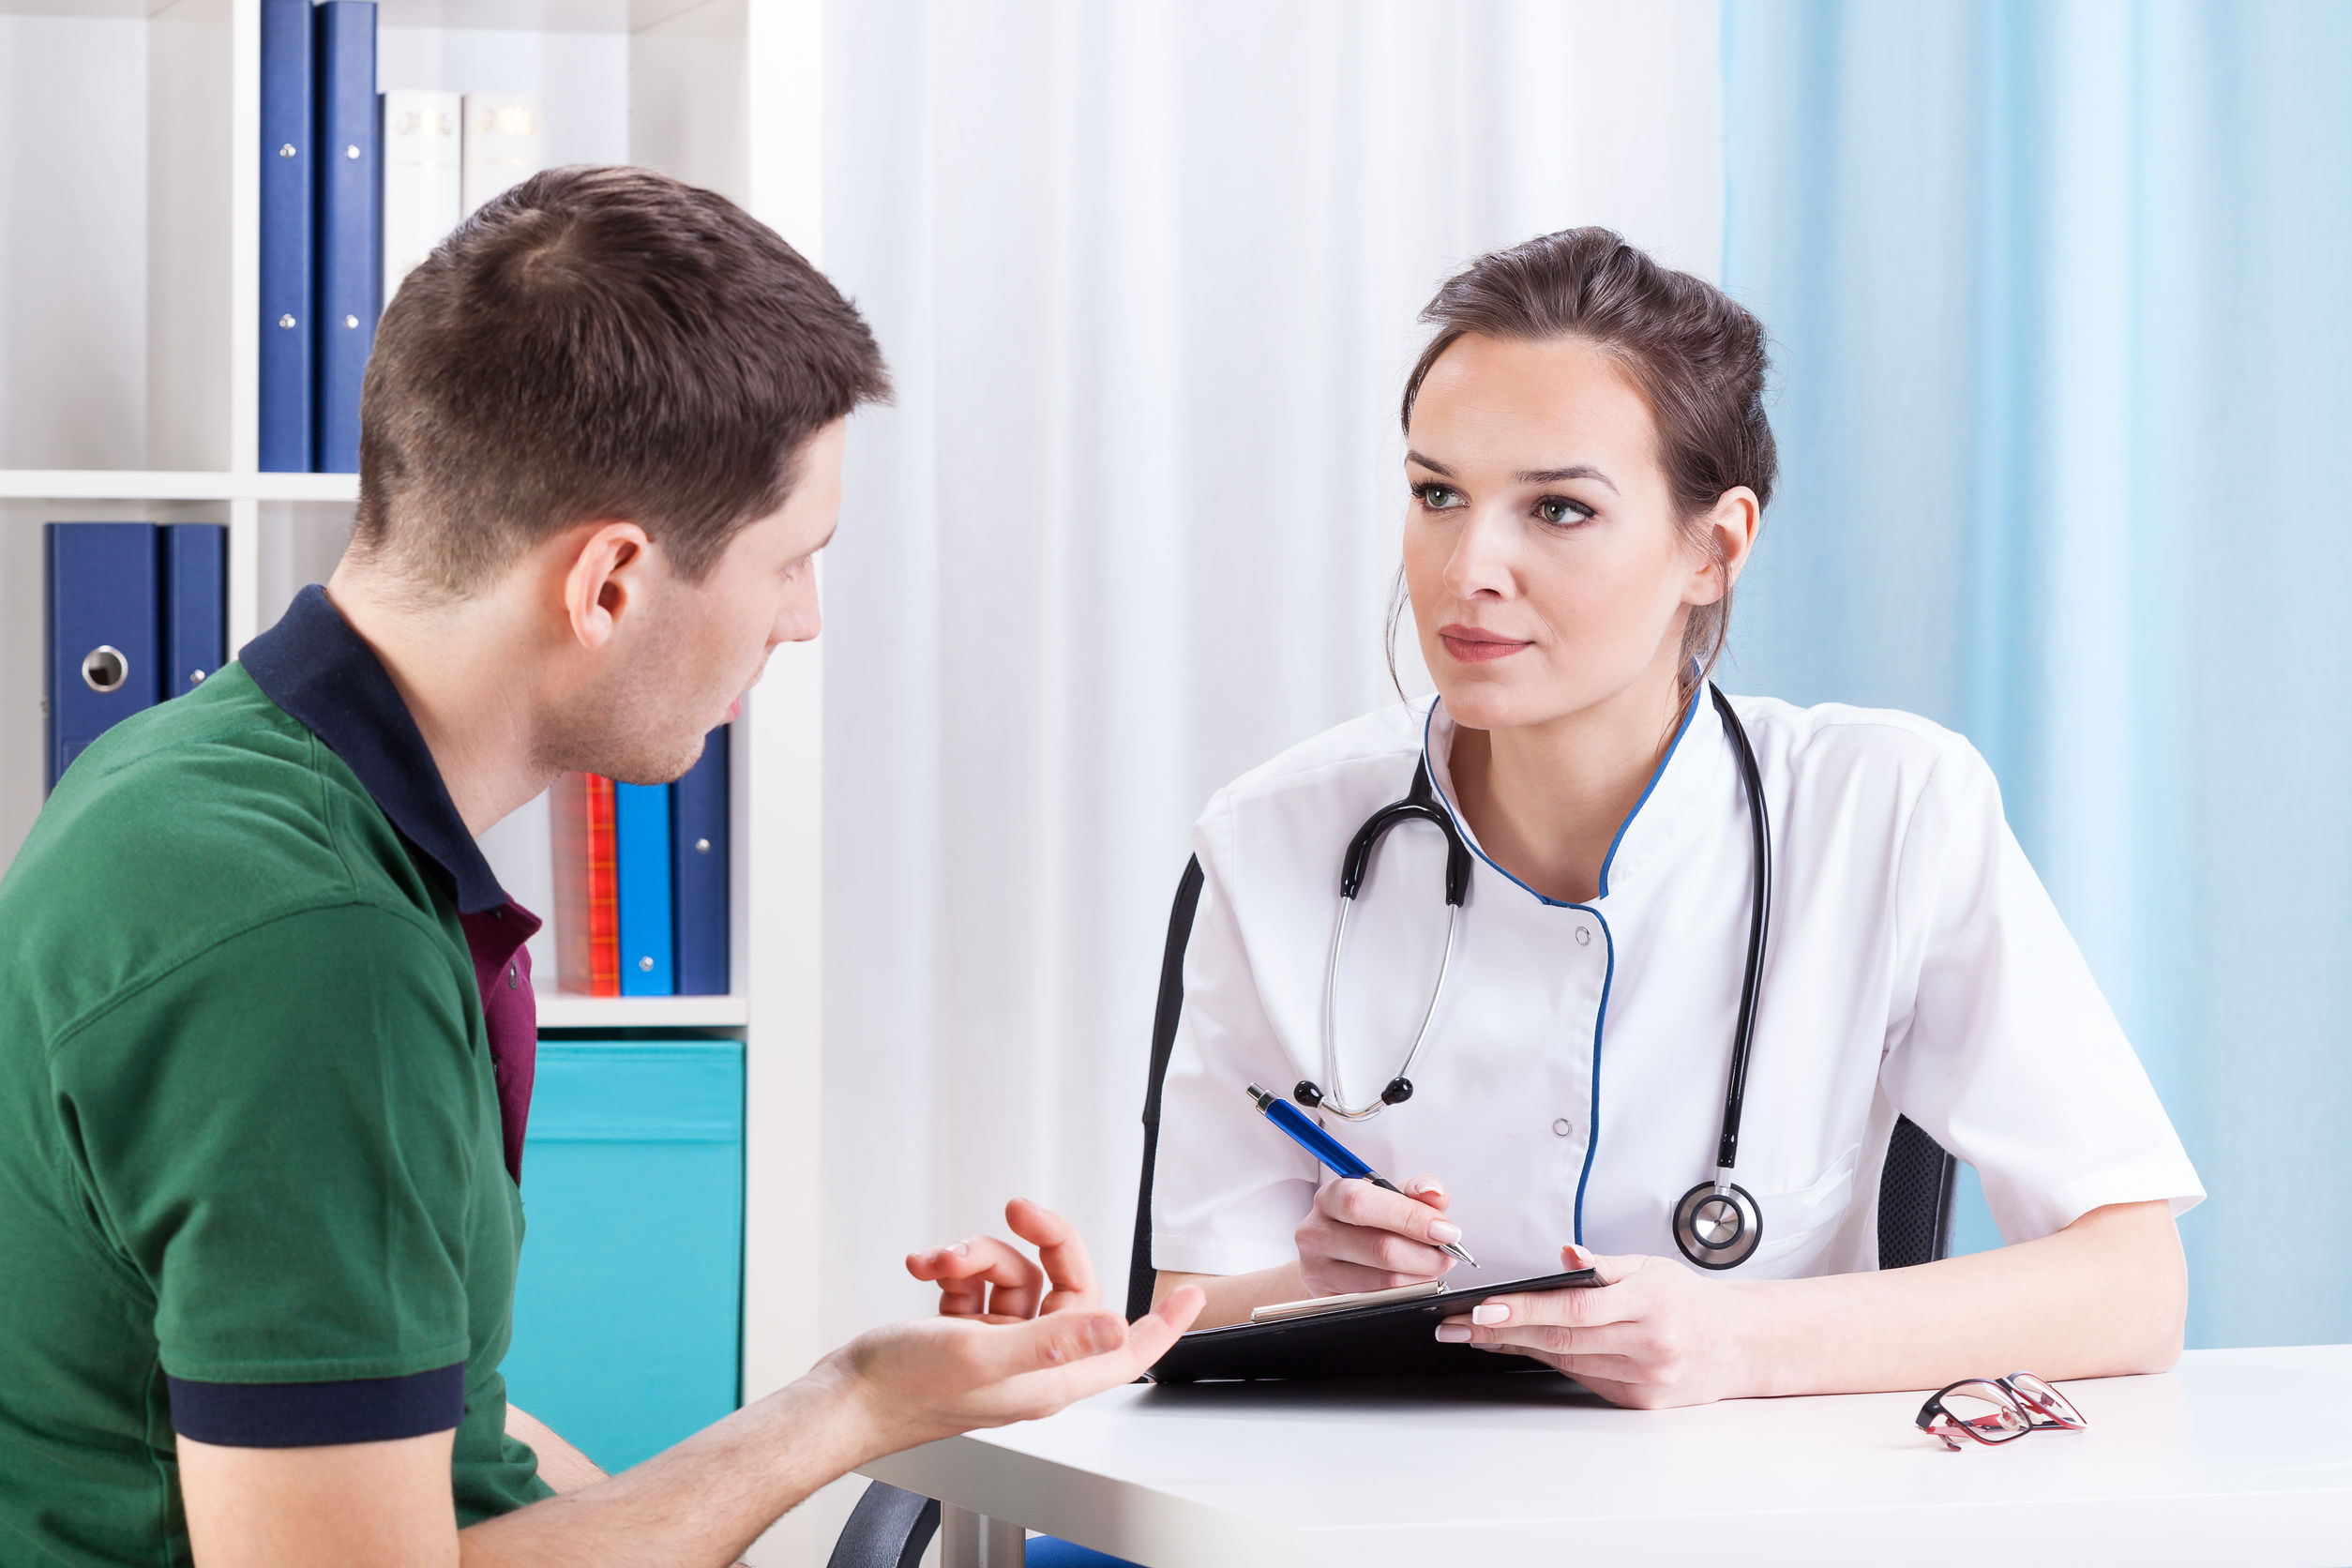 A doctor and patient chatting about what doctors wish their patients knew